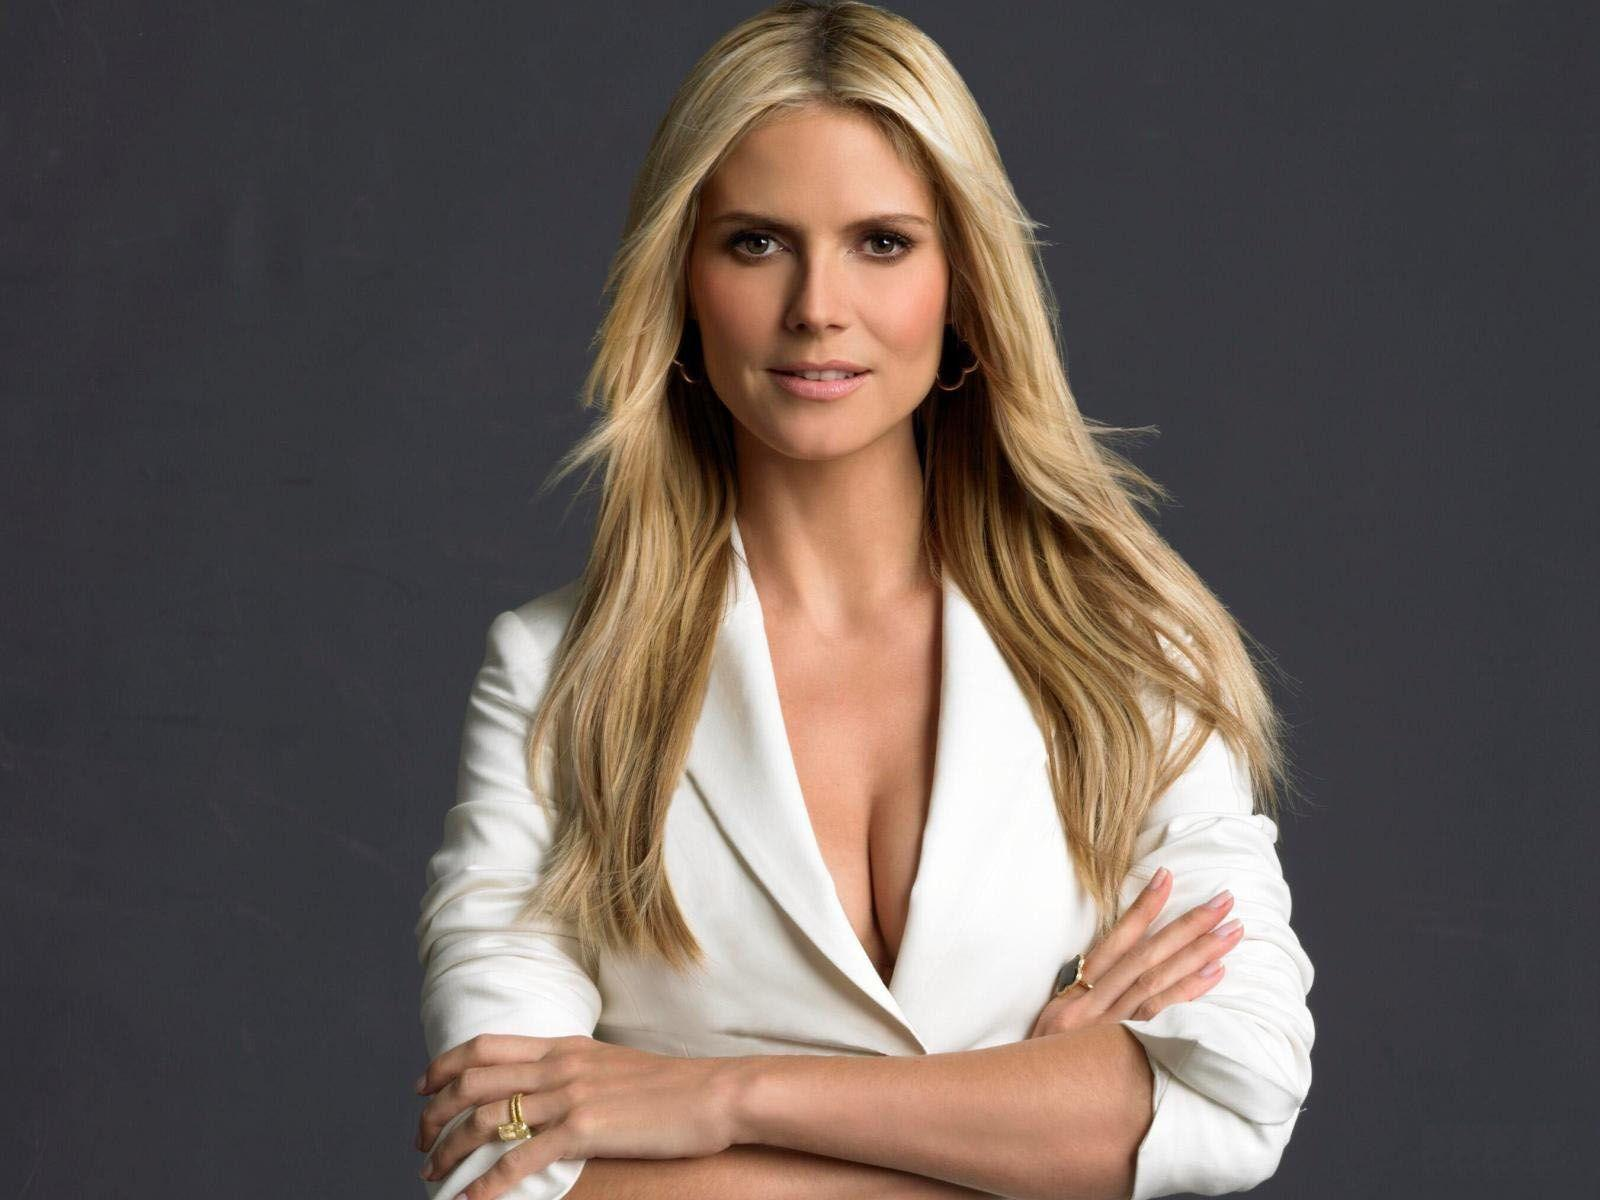 All The awesome Photos: Heidi Klum Hot Wallpapers